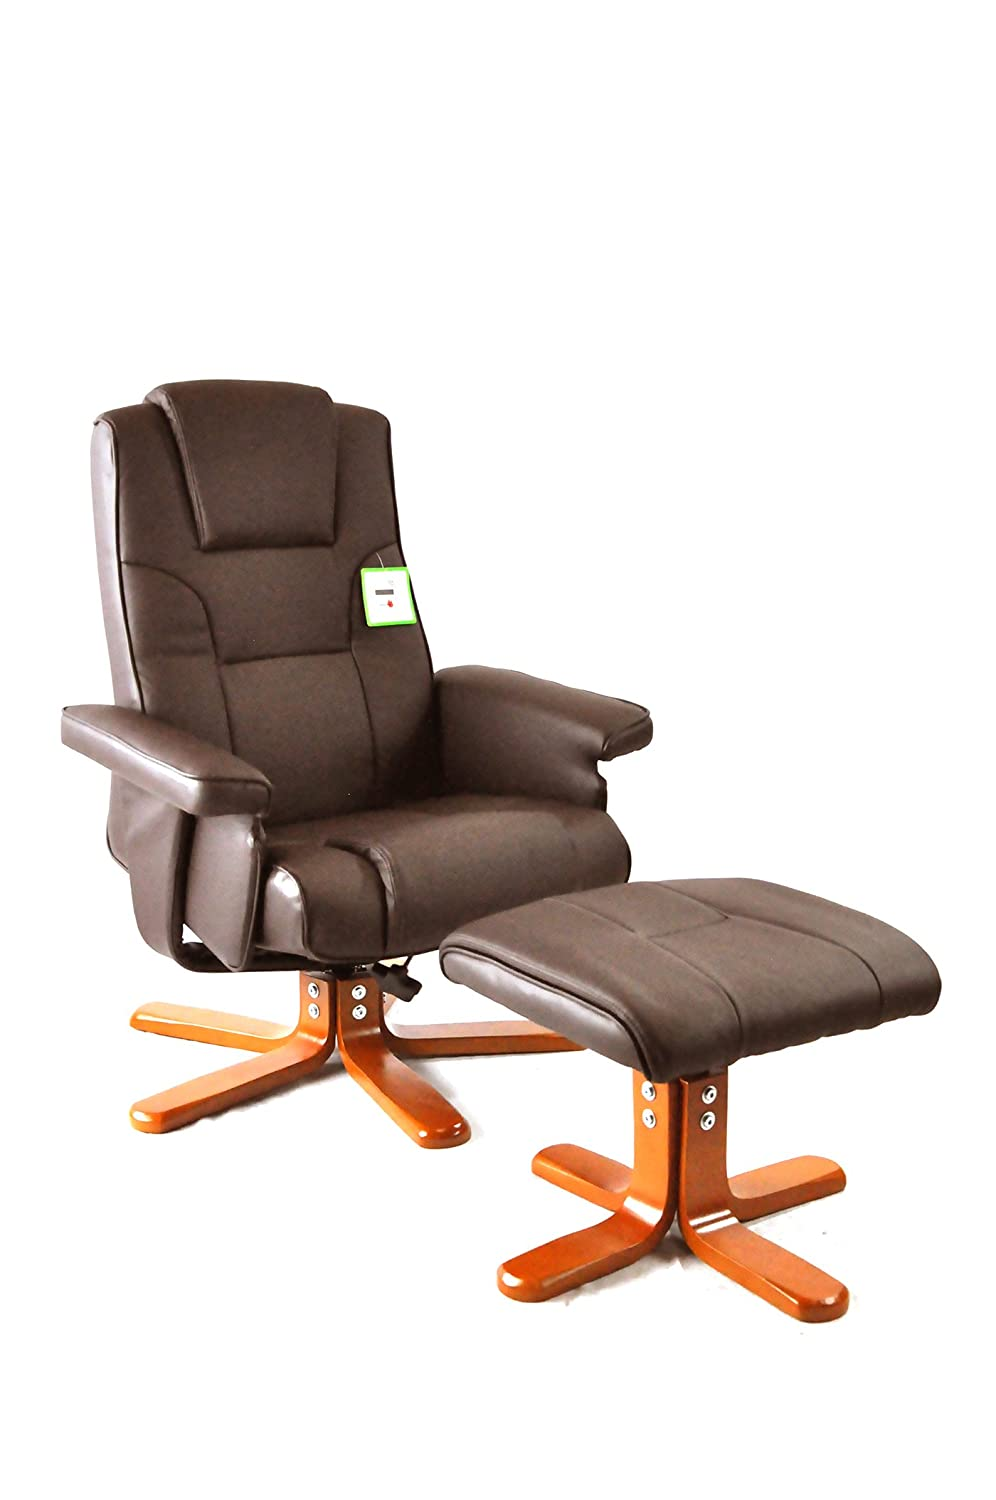 Armchair Recliner With Footstool Executive PU Leather Luxury Faux High Back  Reading Chair For Home Study Office Desk By Harvey Williams   Brown: ...